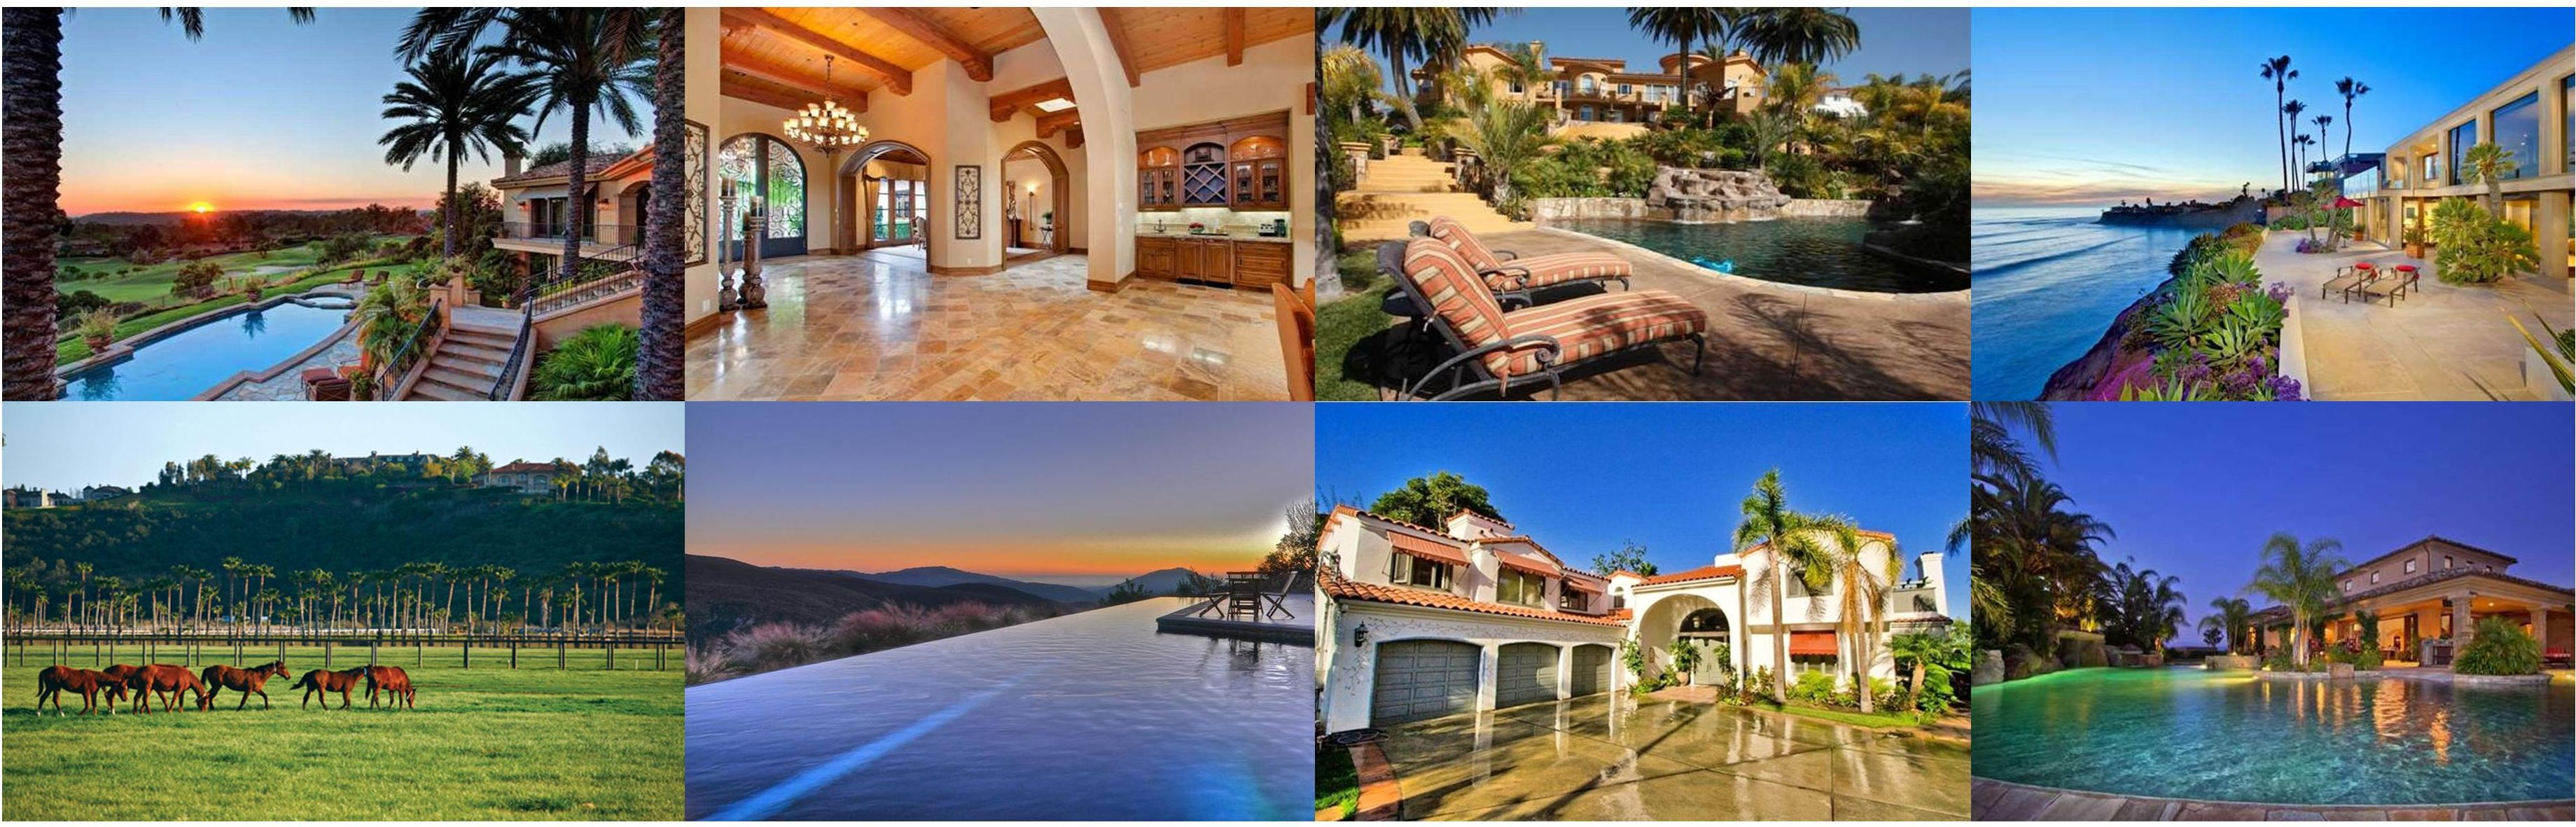 Luxury Homes - Oscar Castillo REALTOR Broker Associate San Diego